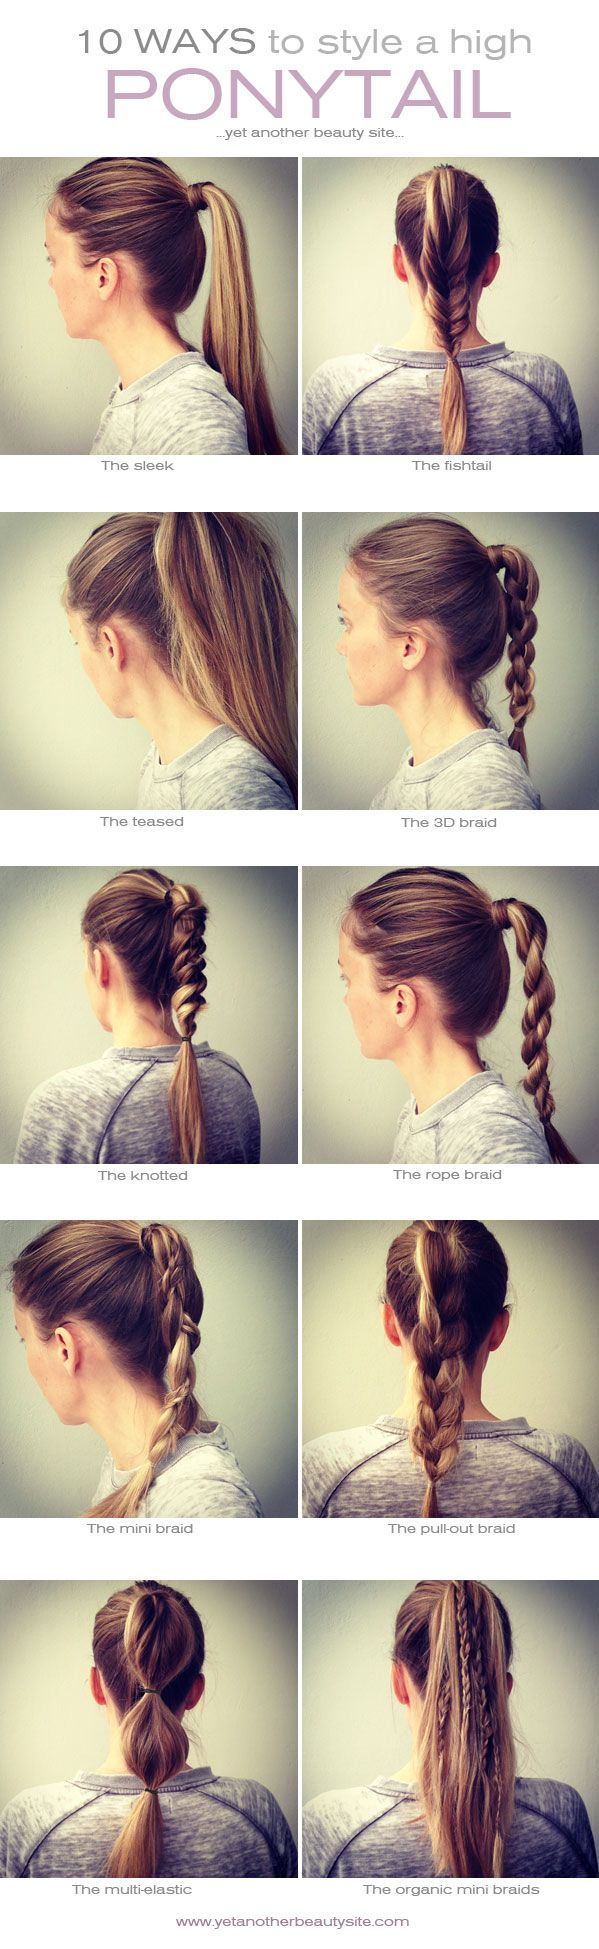 10 ways to style a high pony tail